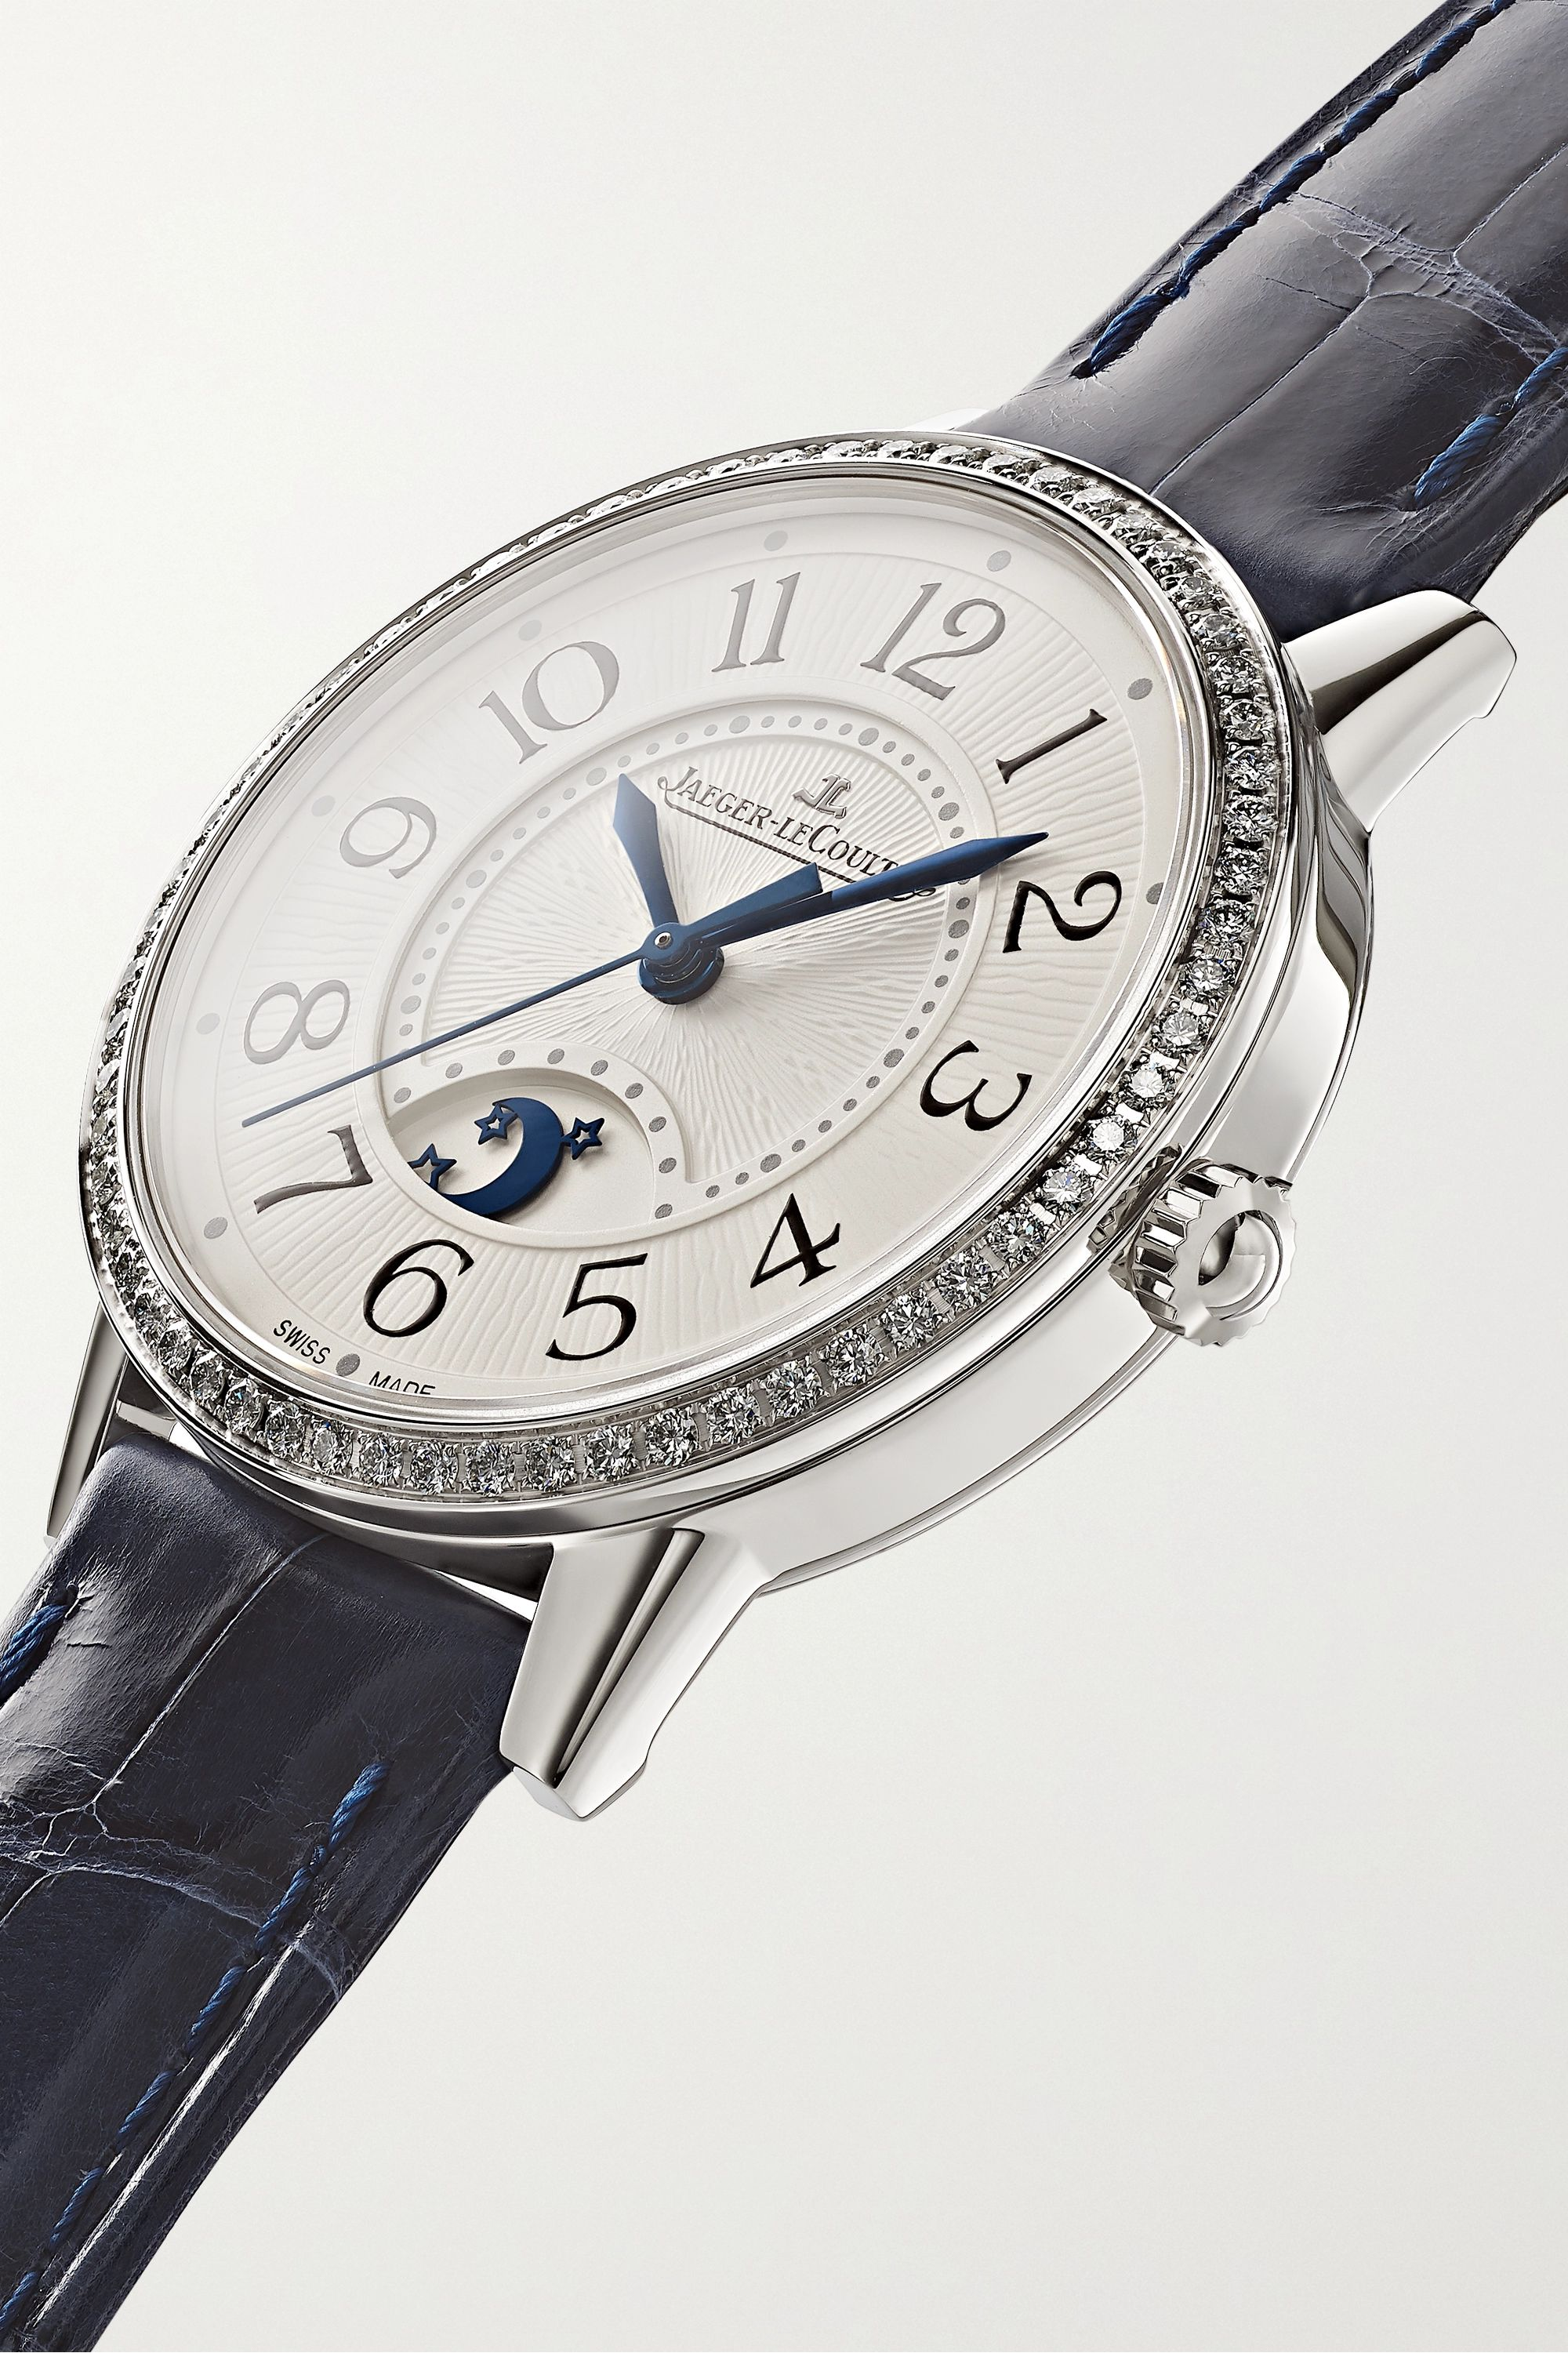 Jaeger-LeCoultre Rendez-Vous Moon Automatic 29mm medium stainless steel, alligator and diamond watch